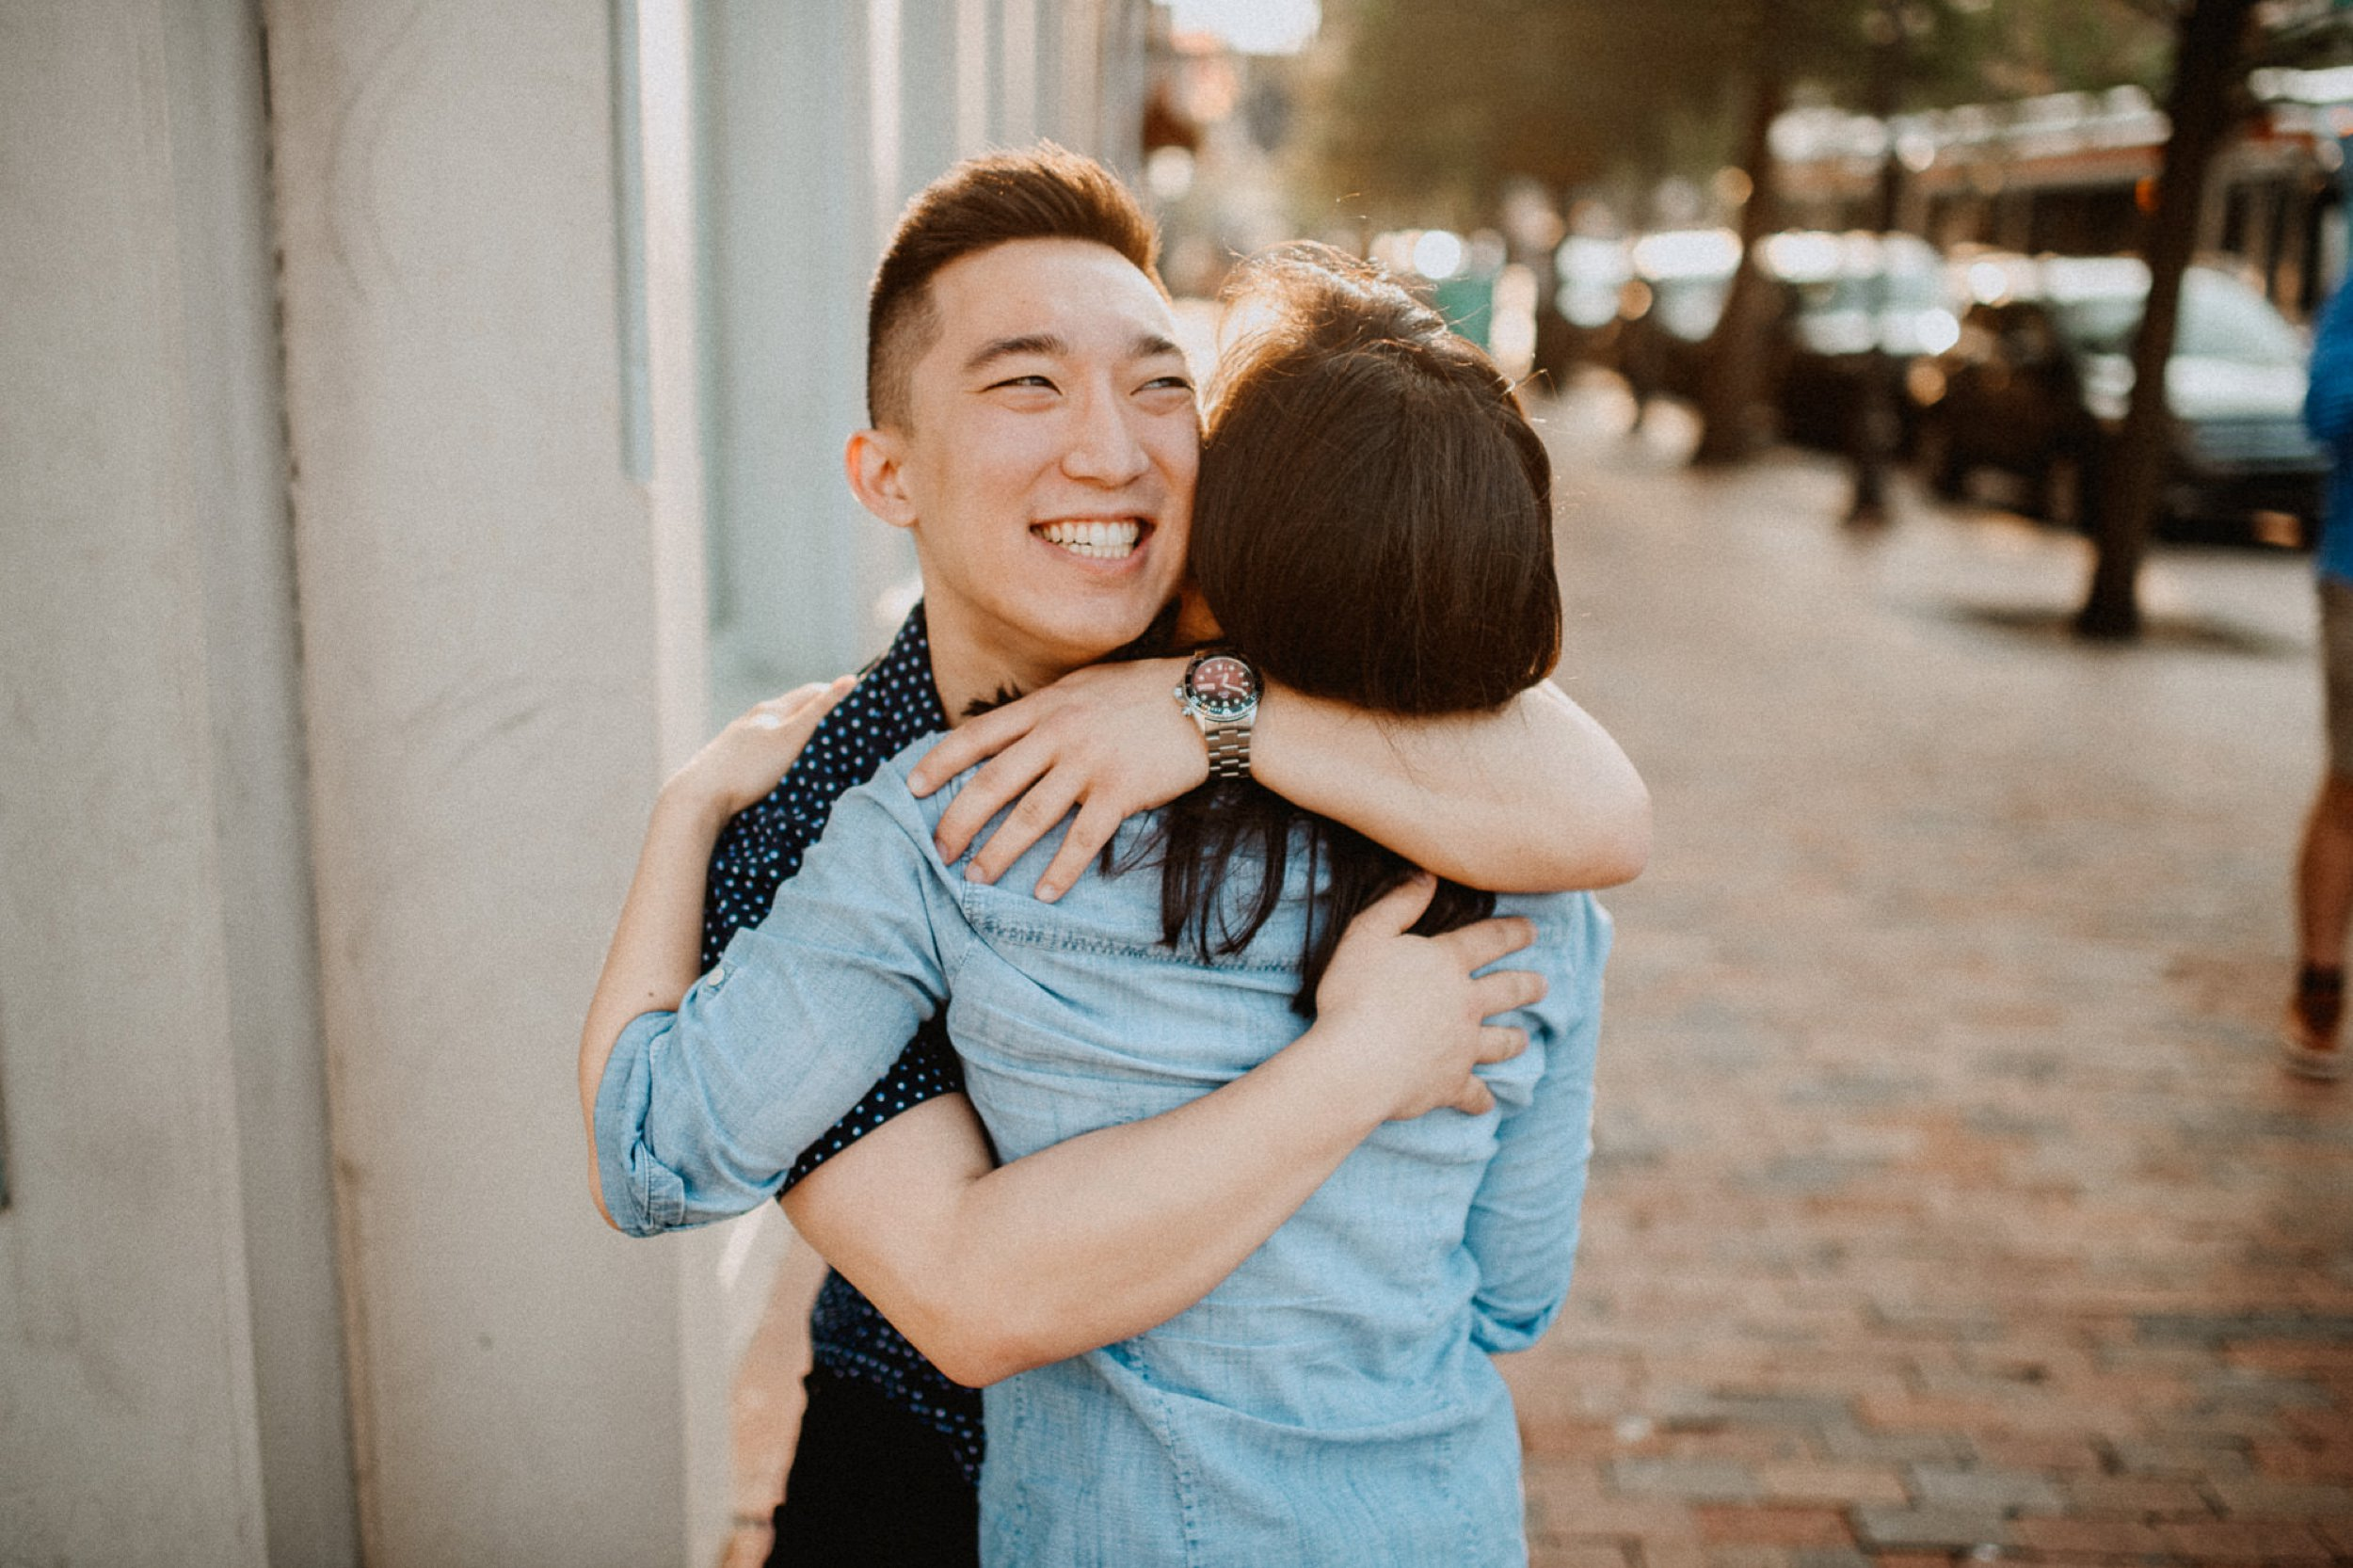 philly_engagement_session-8.jpg